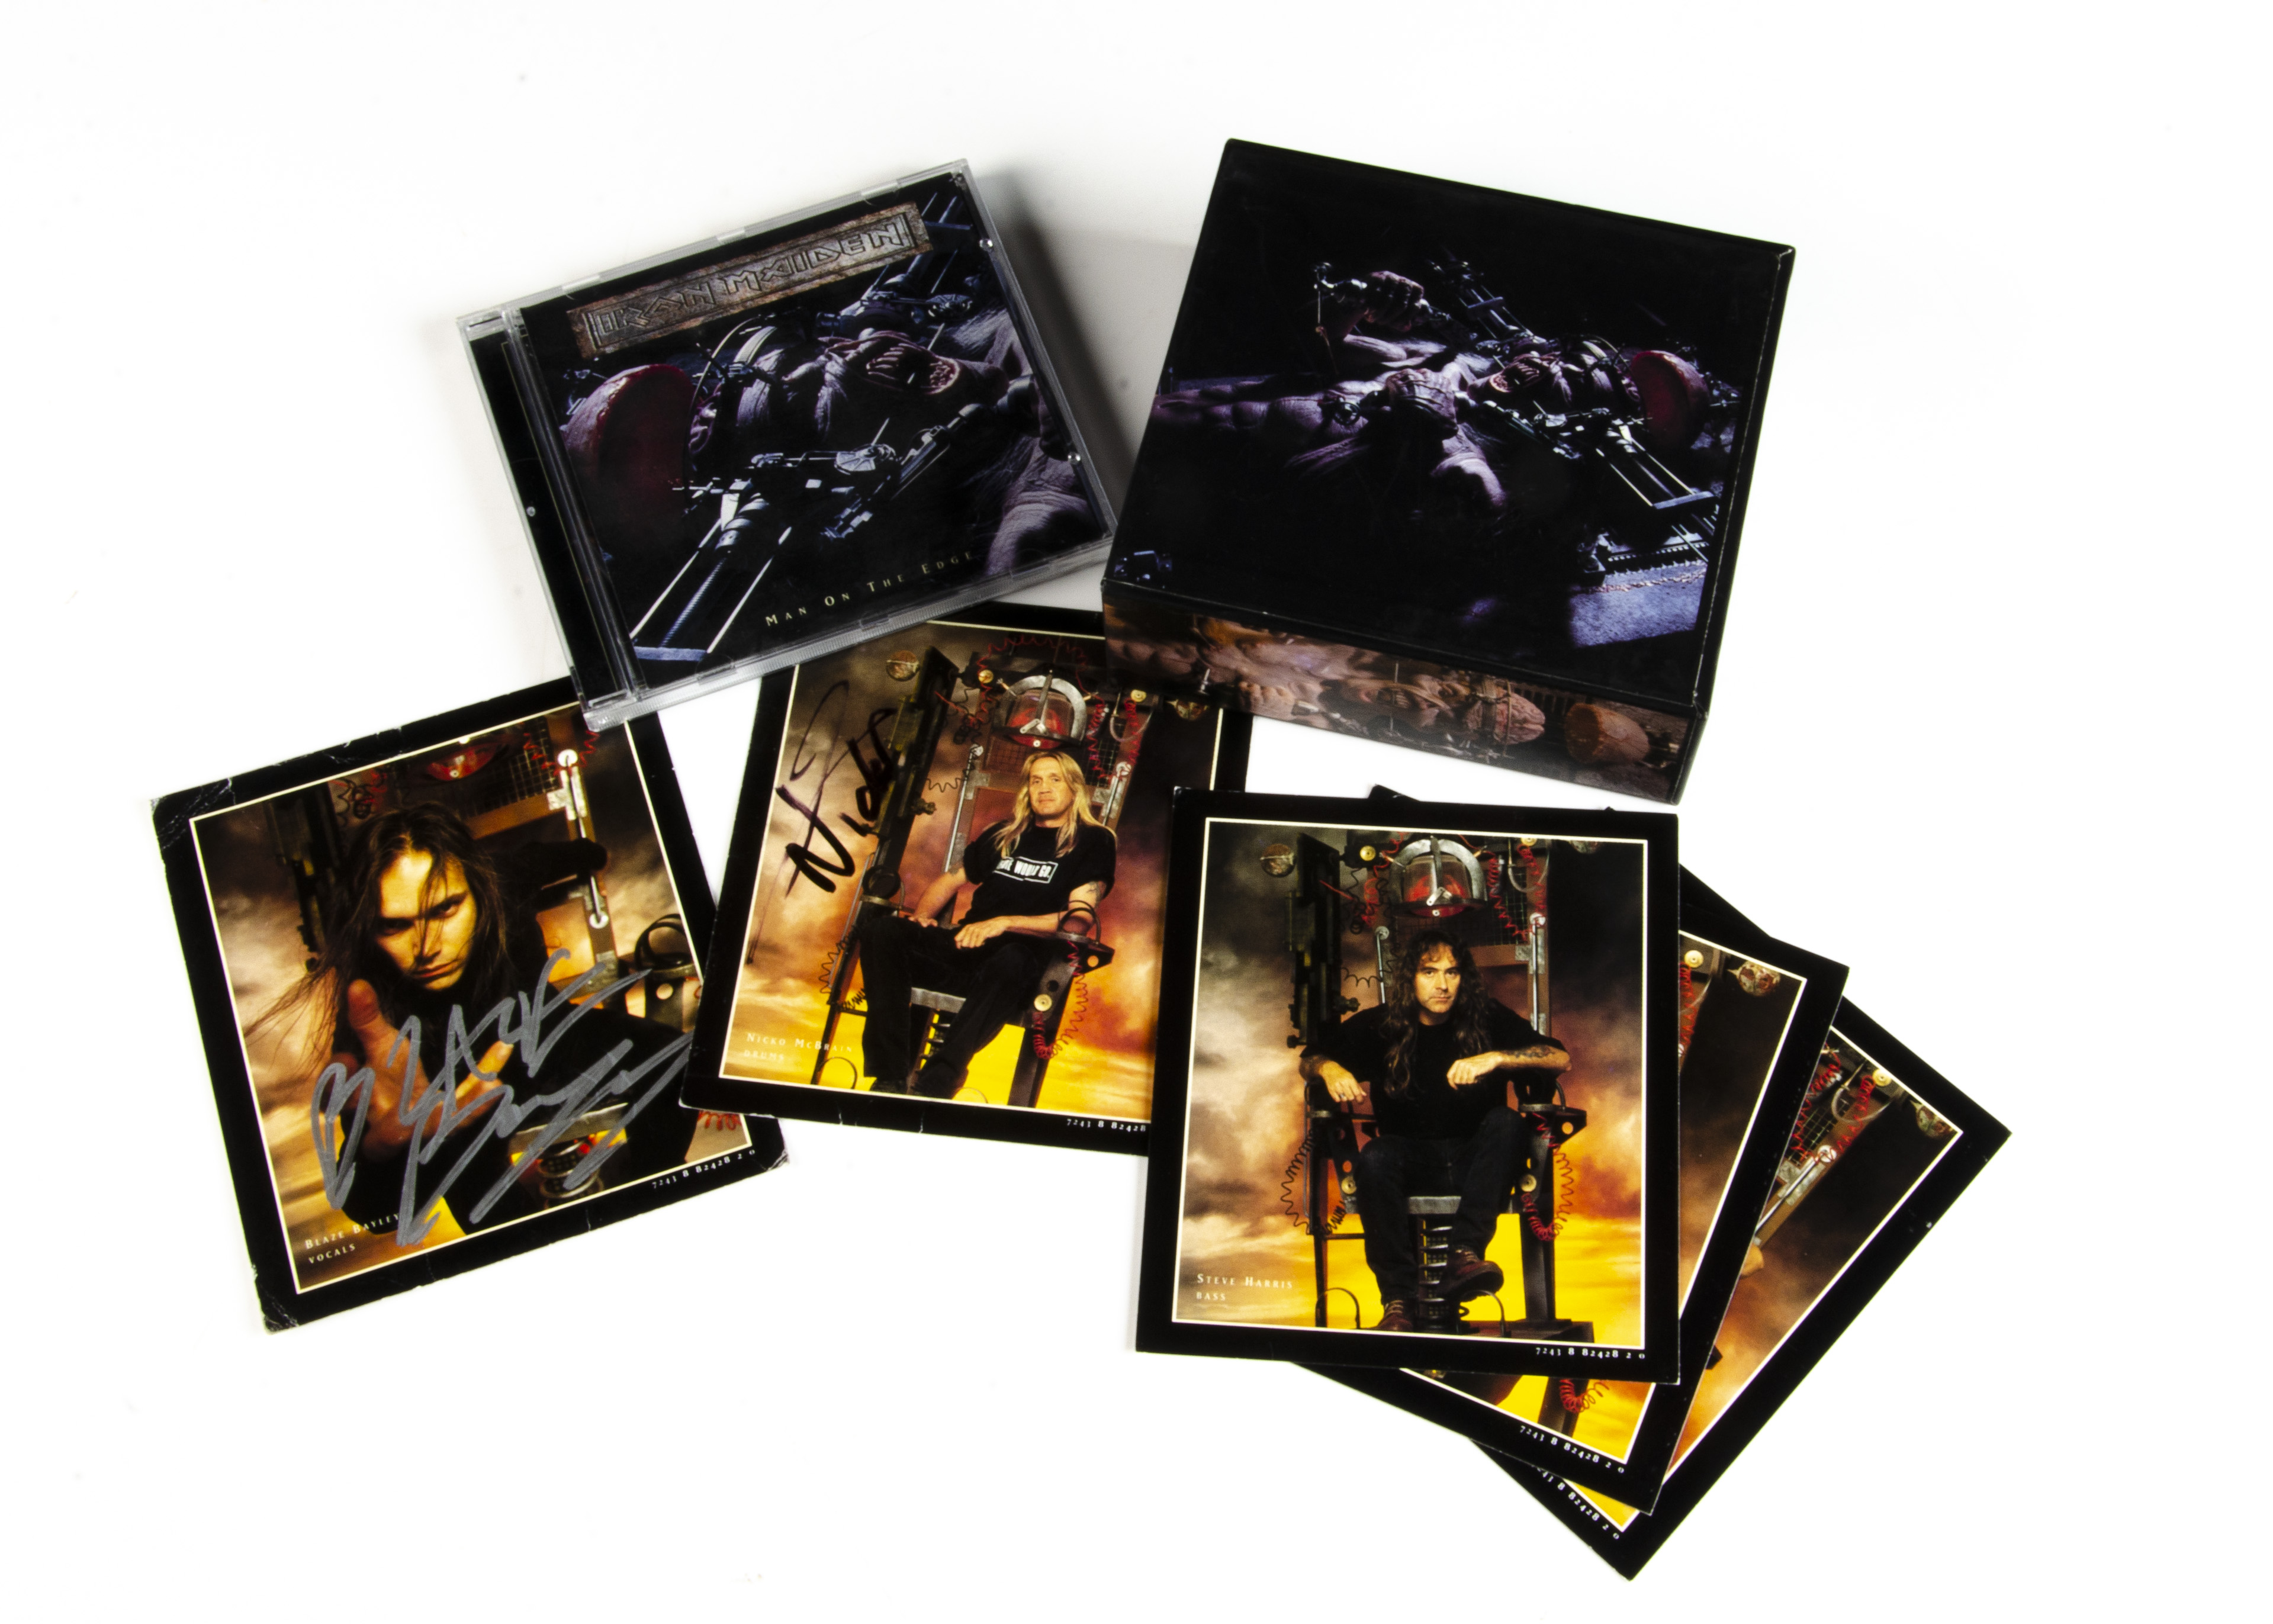 Iron Maiden Signed CD Single, Man On The Edge CD Single Box released 1995 on EMI (CDEMS 398) -